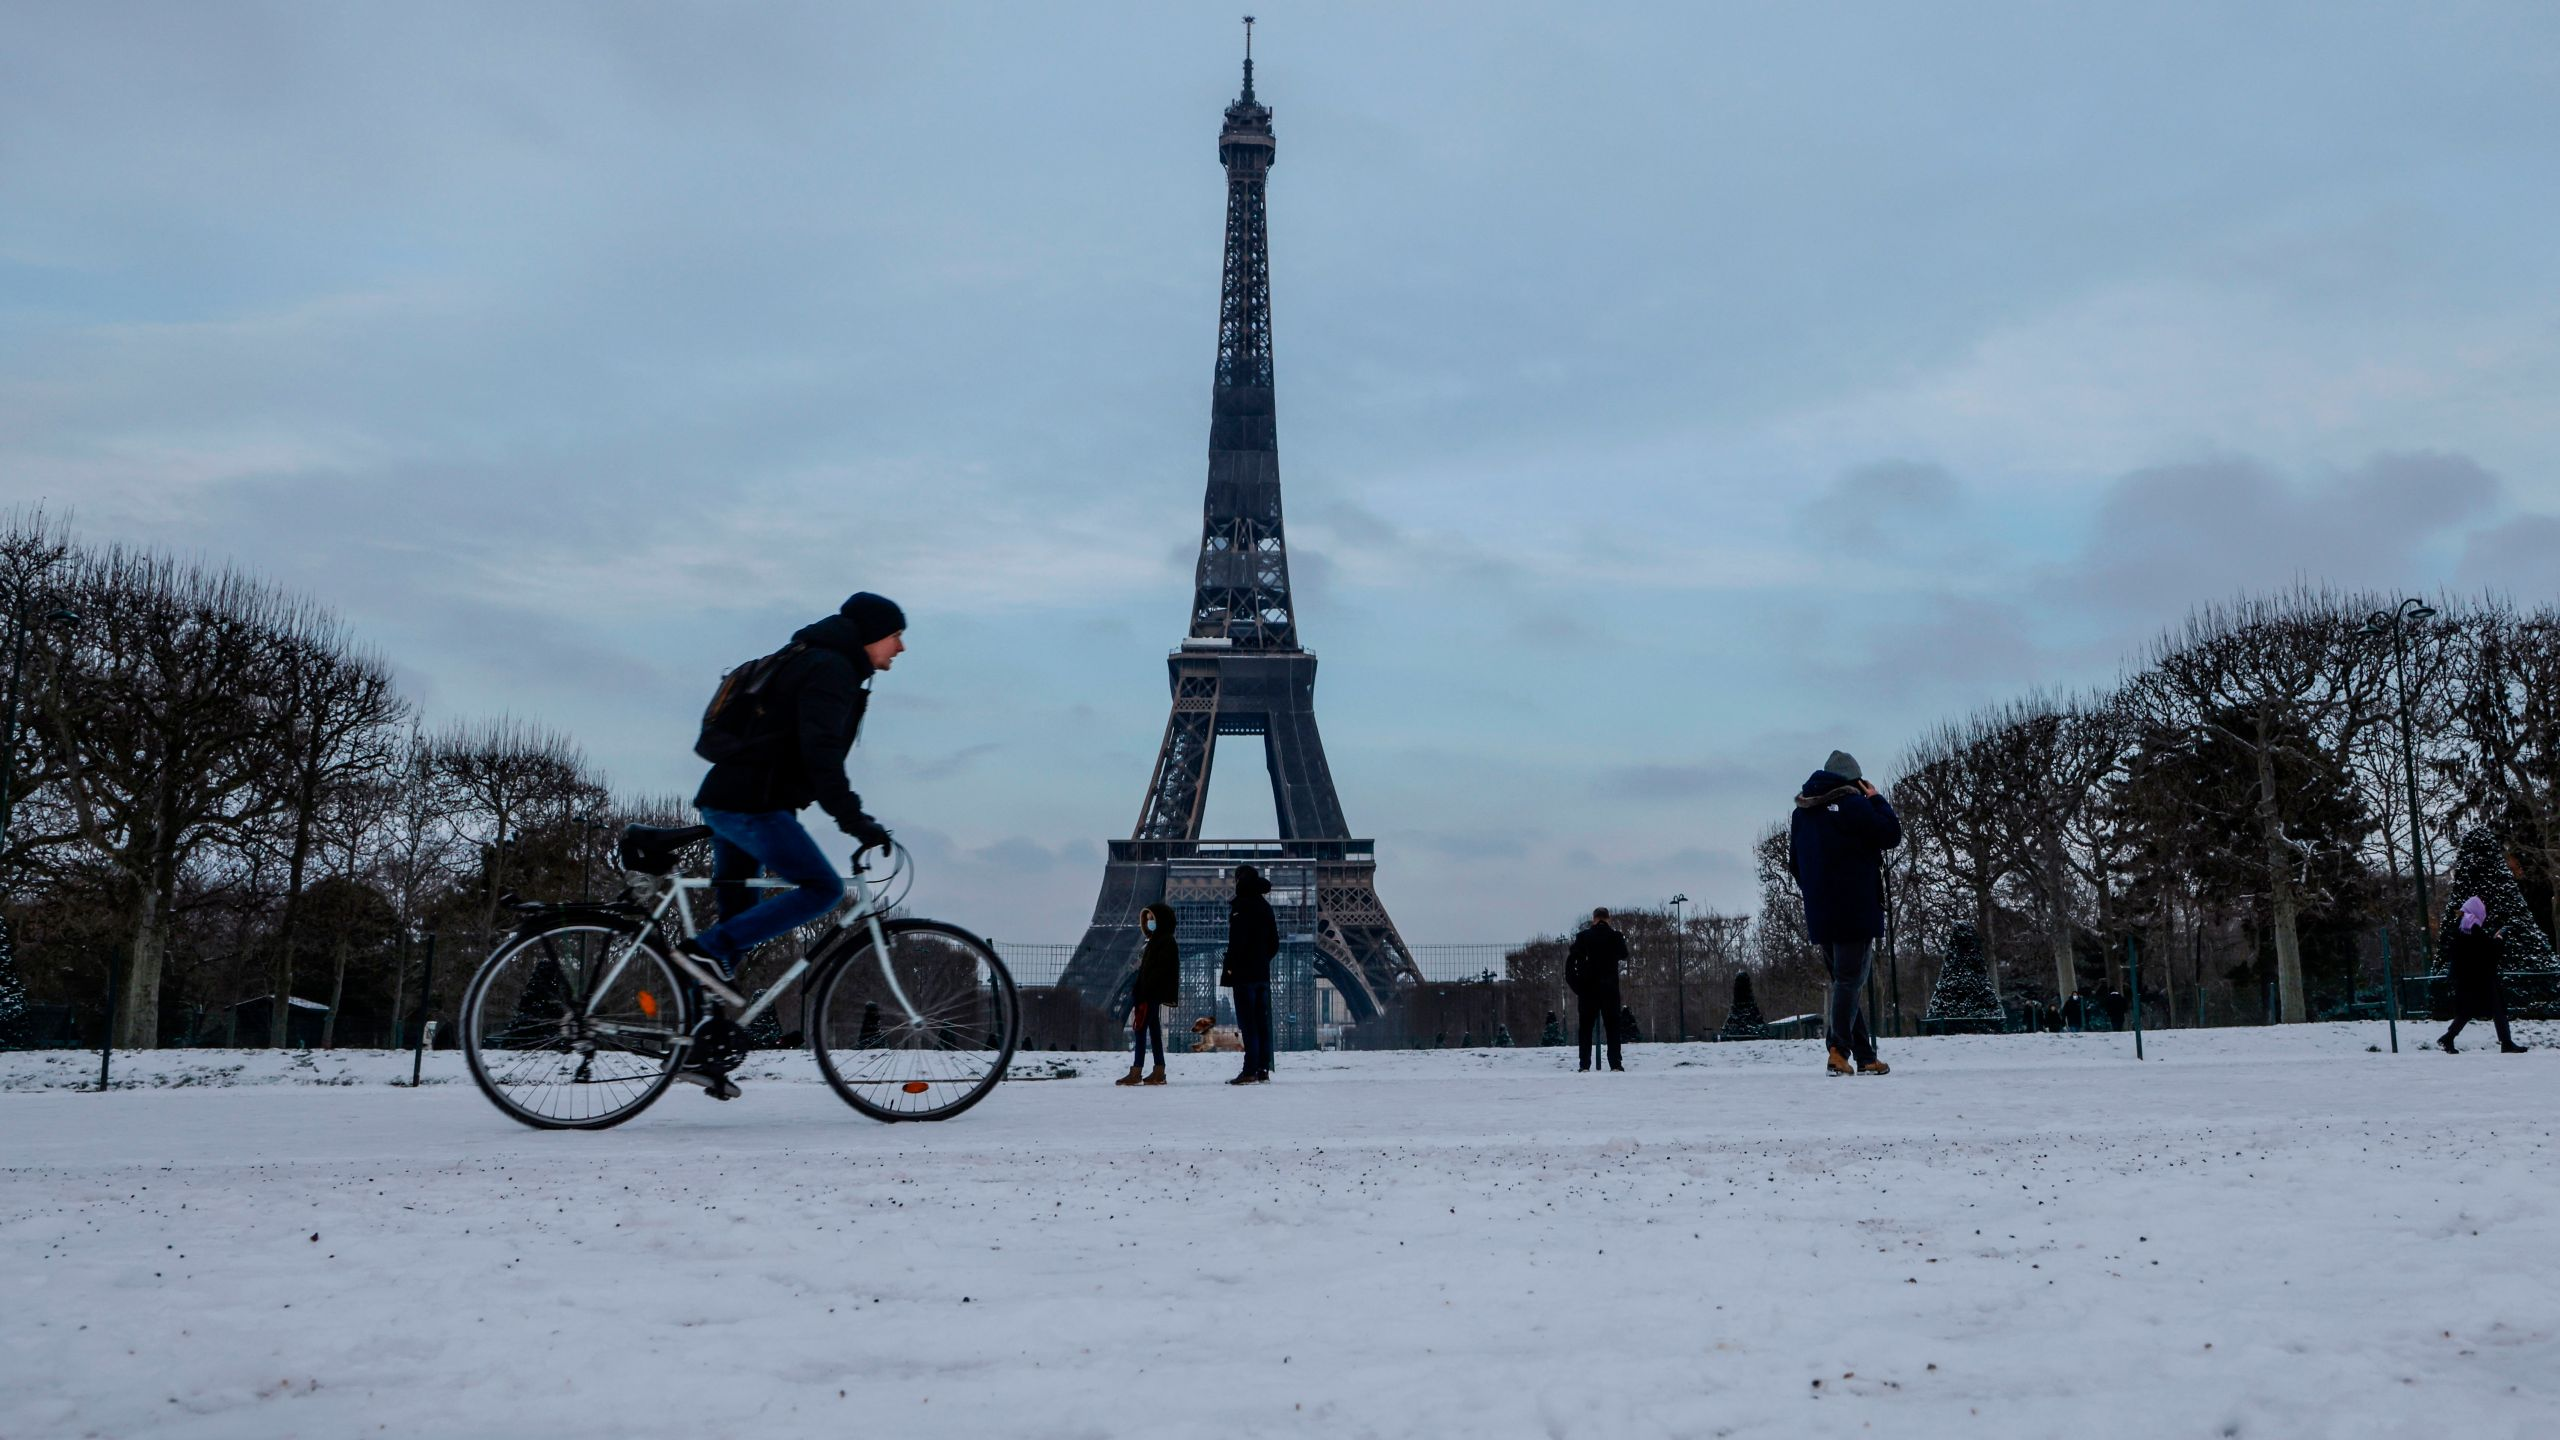 A cyclist rides past the Eiffel Tower following a light overnight snowfall in Paris on February 10, 2021. (Photo by LUDOVIC MARIN/AFP via Getty Images)